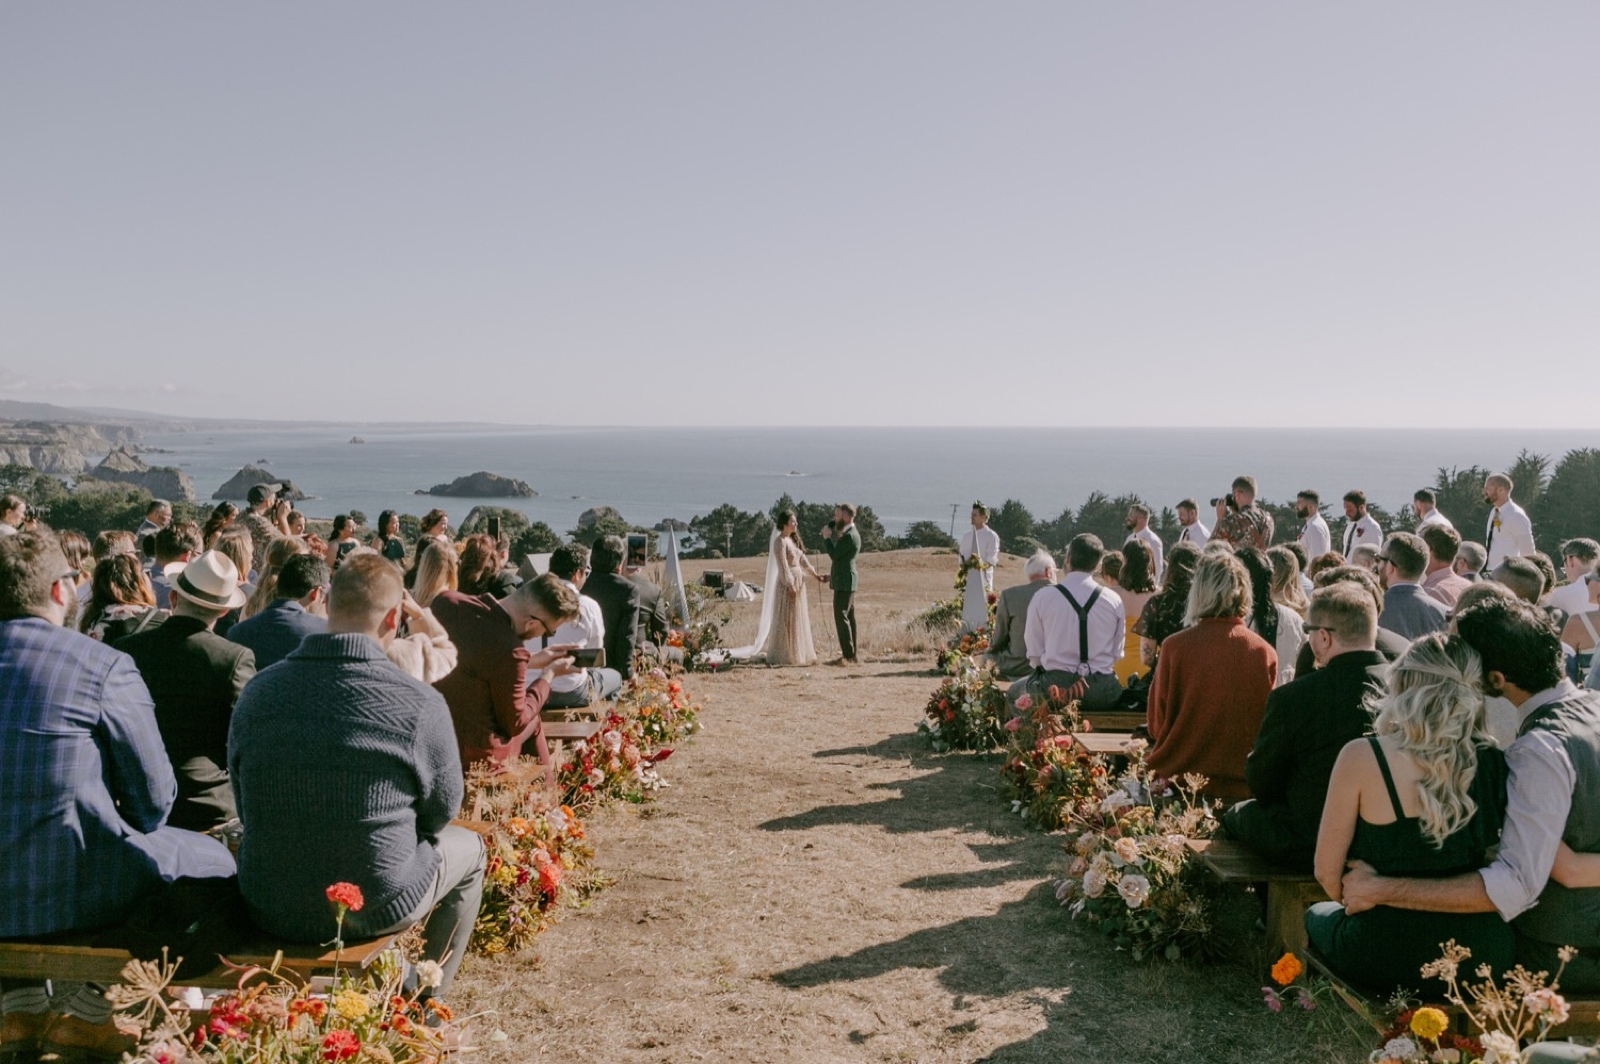 Mendocino_Wedding_Cuffeys_Cove084.JPG